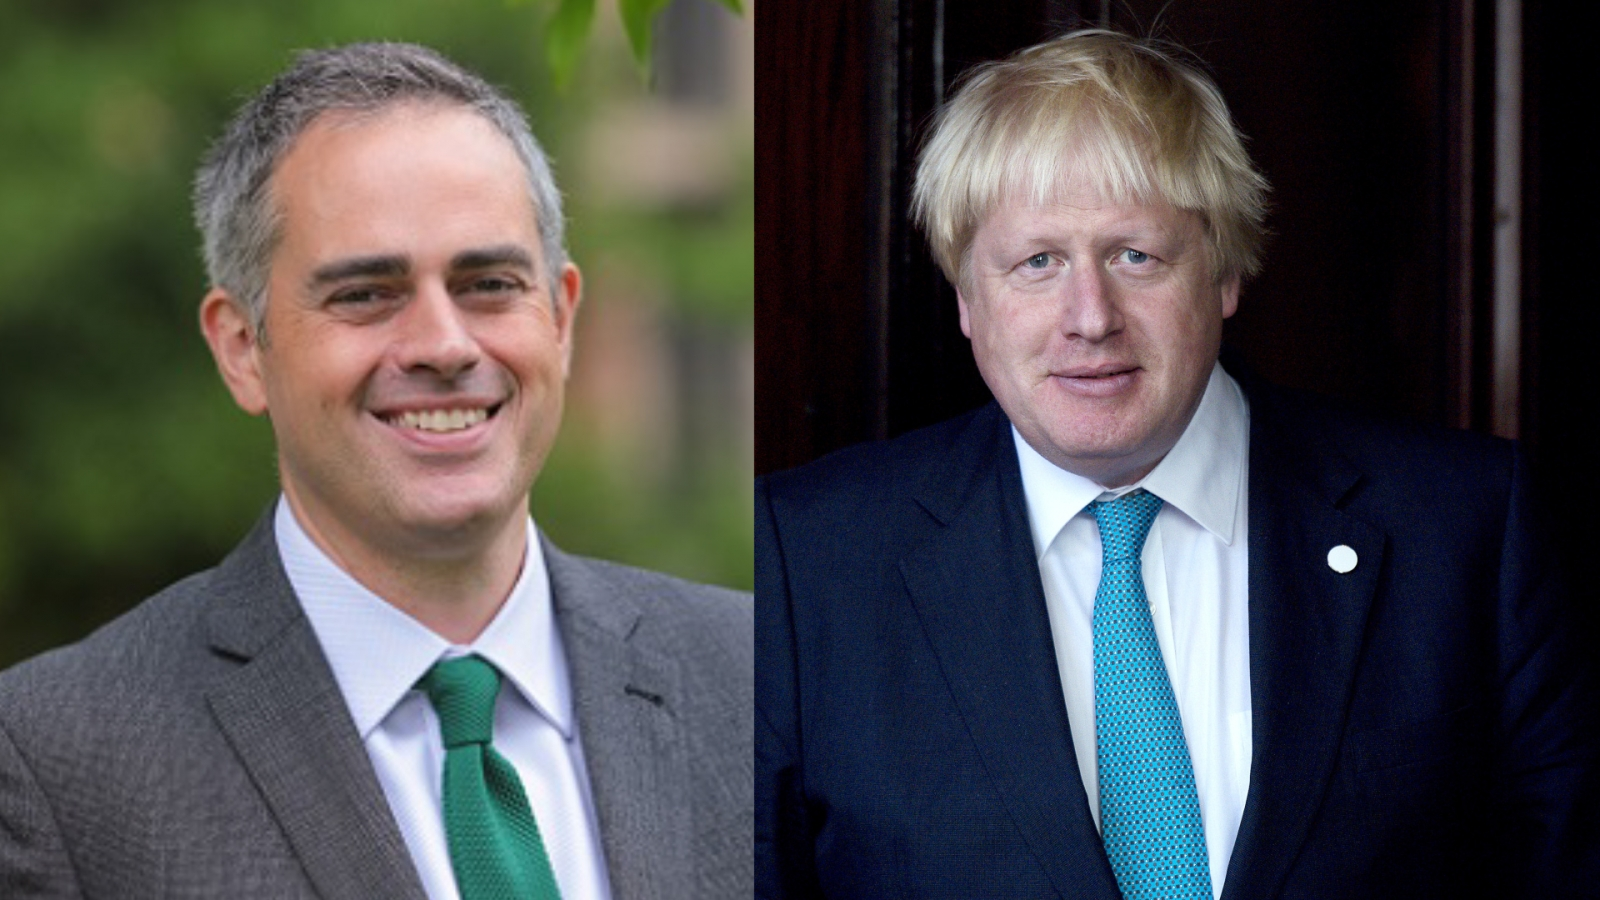 'Muzzled' Boris Johnson should quit cabinet over Heathrow approval says Green leader